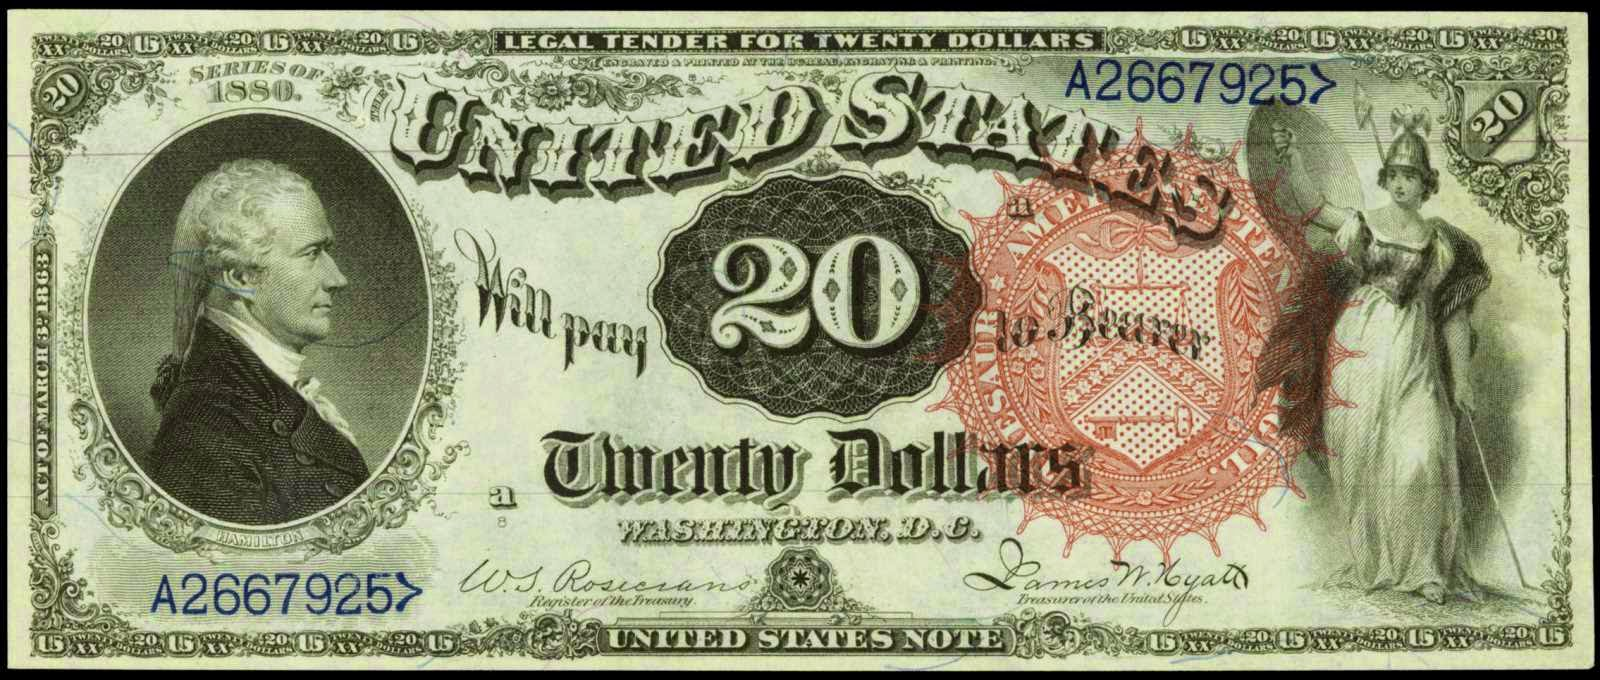 United States Notes Twenty Dollar Legal Tender Note Alexander Hamilton